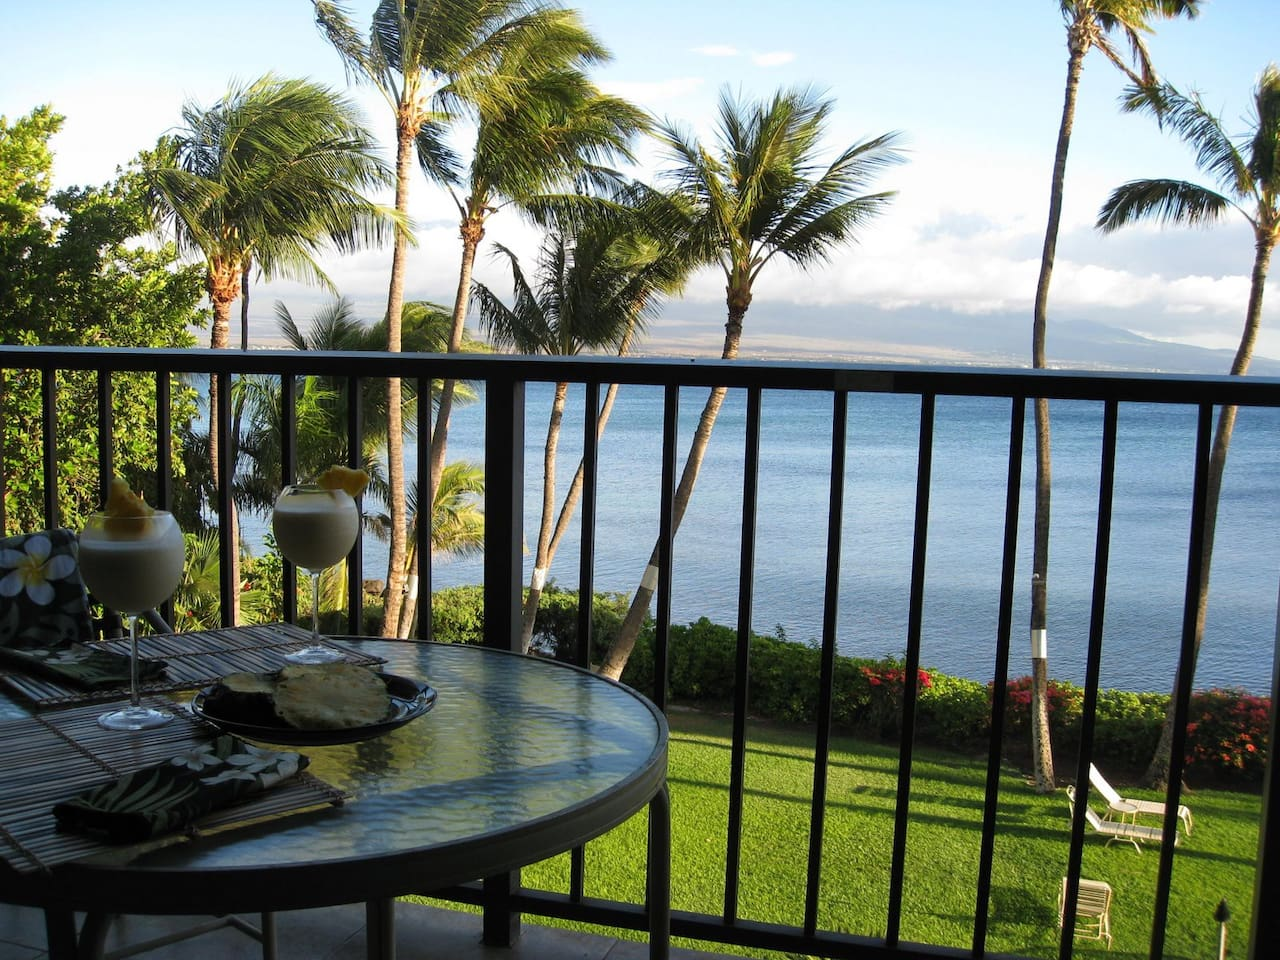 Spacious lanai (balcony) for relaxing, eating, and enjoying the gorgeous view